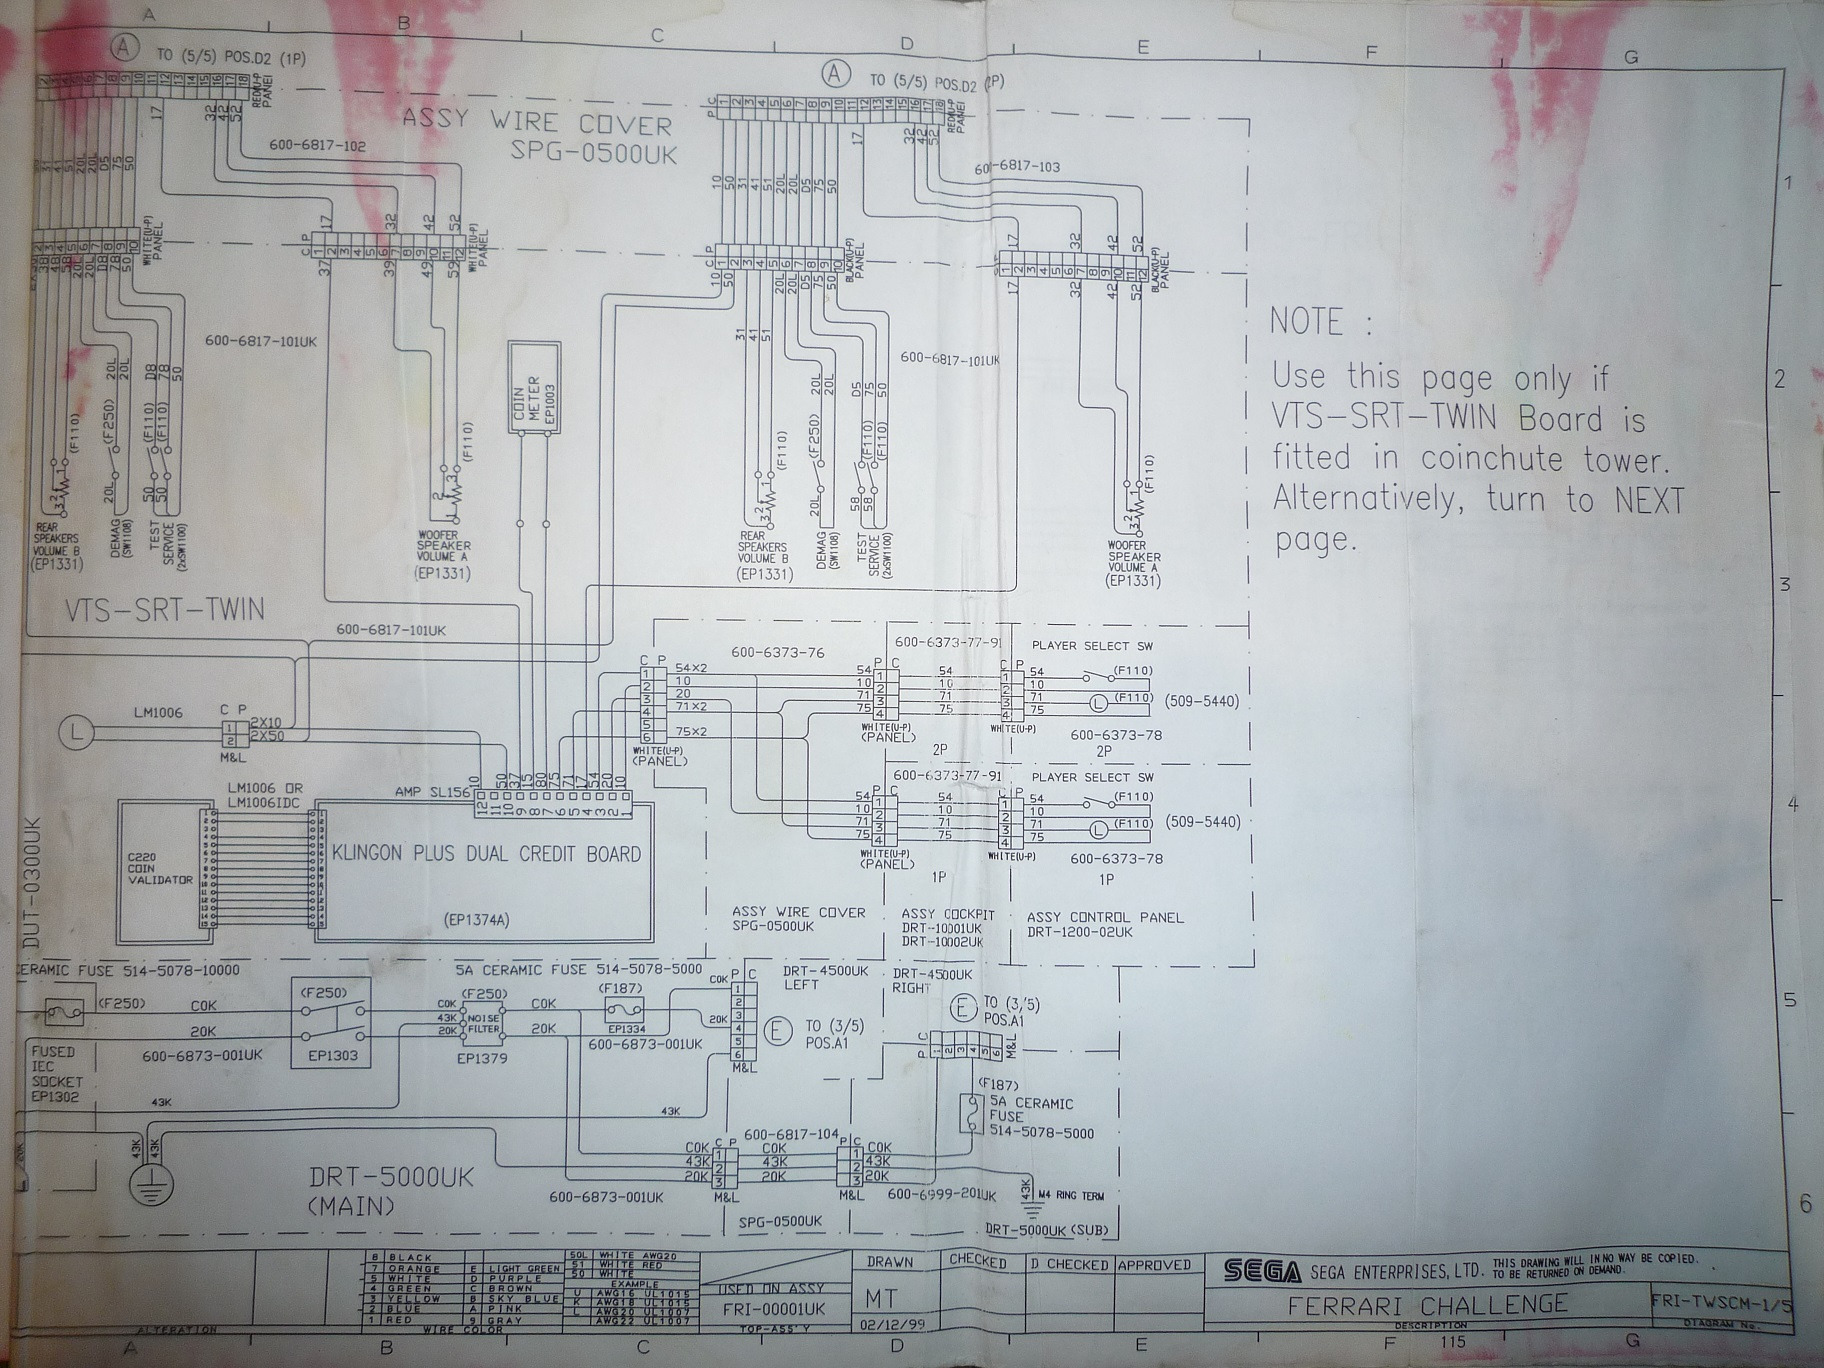 hight resolution of searching f355 challenge wiring diagram in hd uk vac uk video ferrari 355 wiring diagram